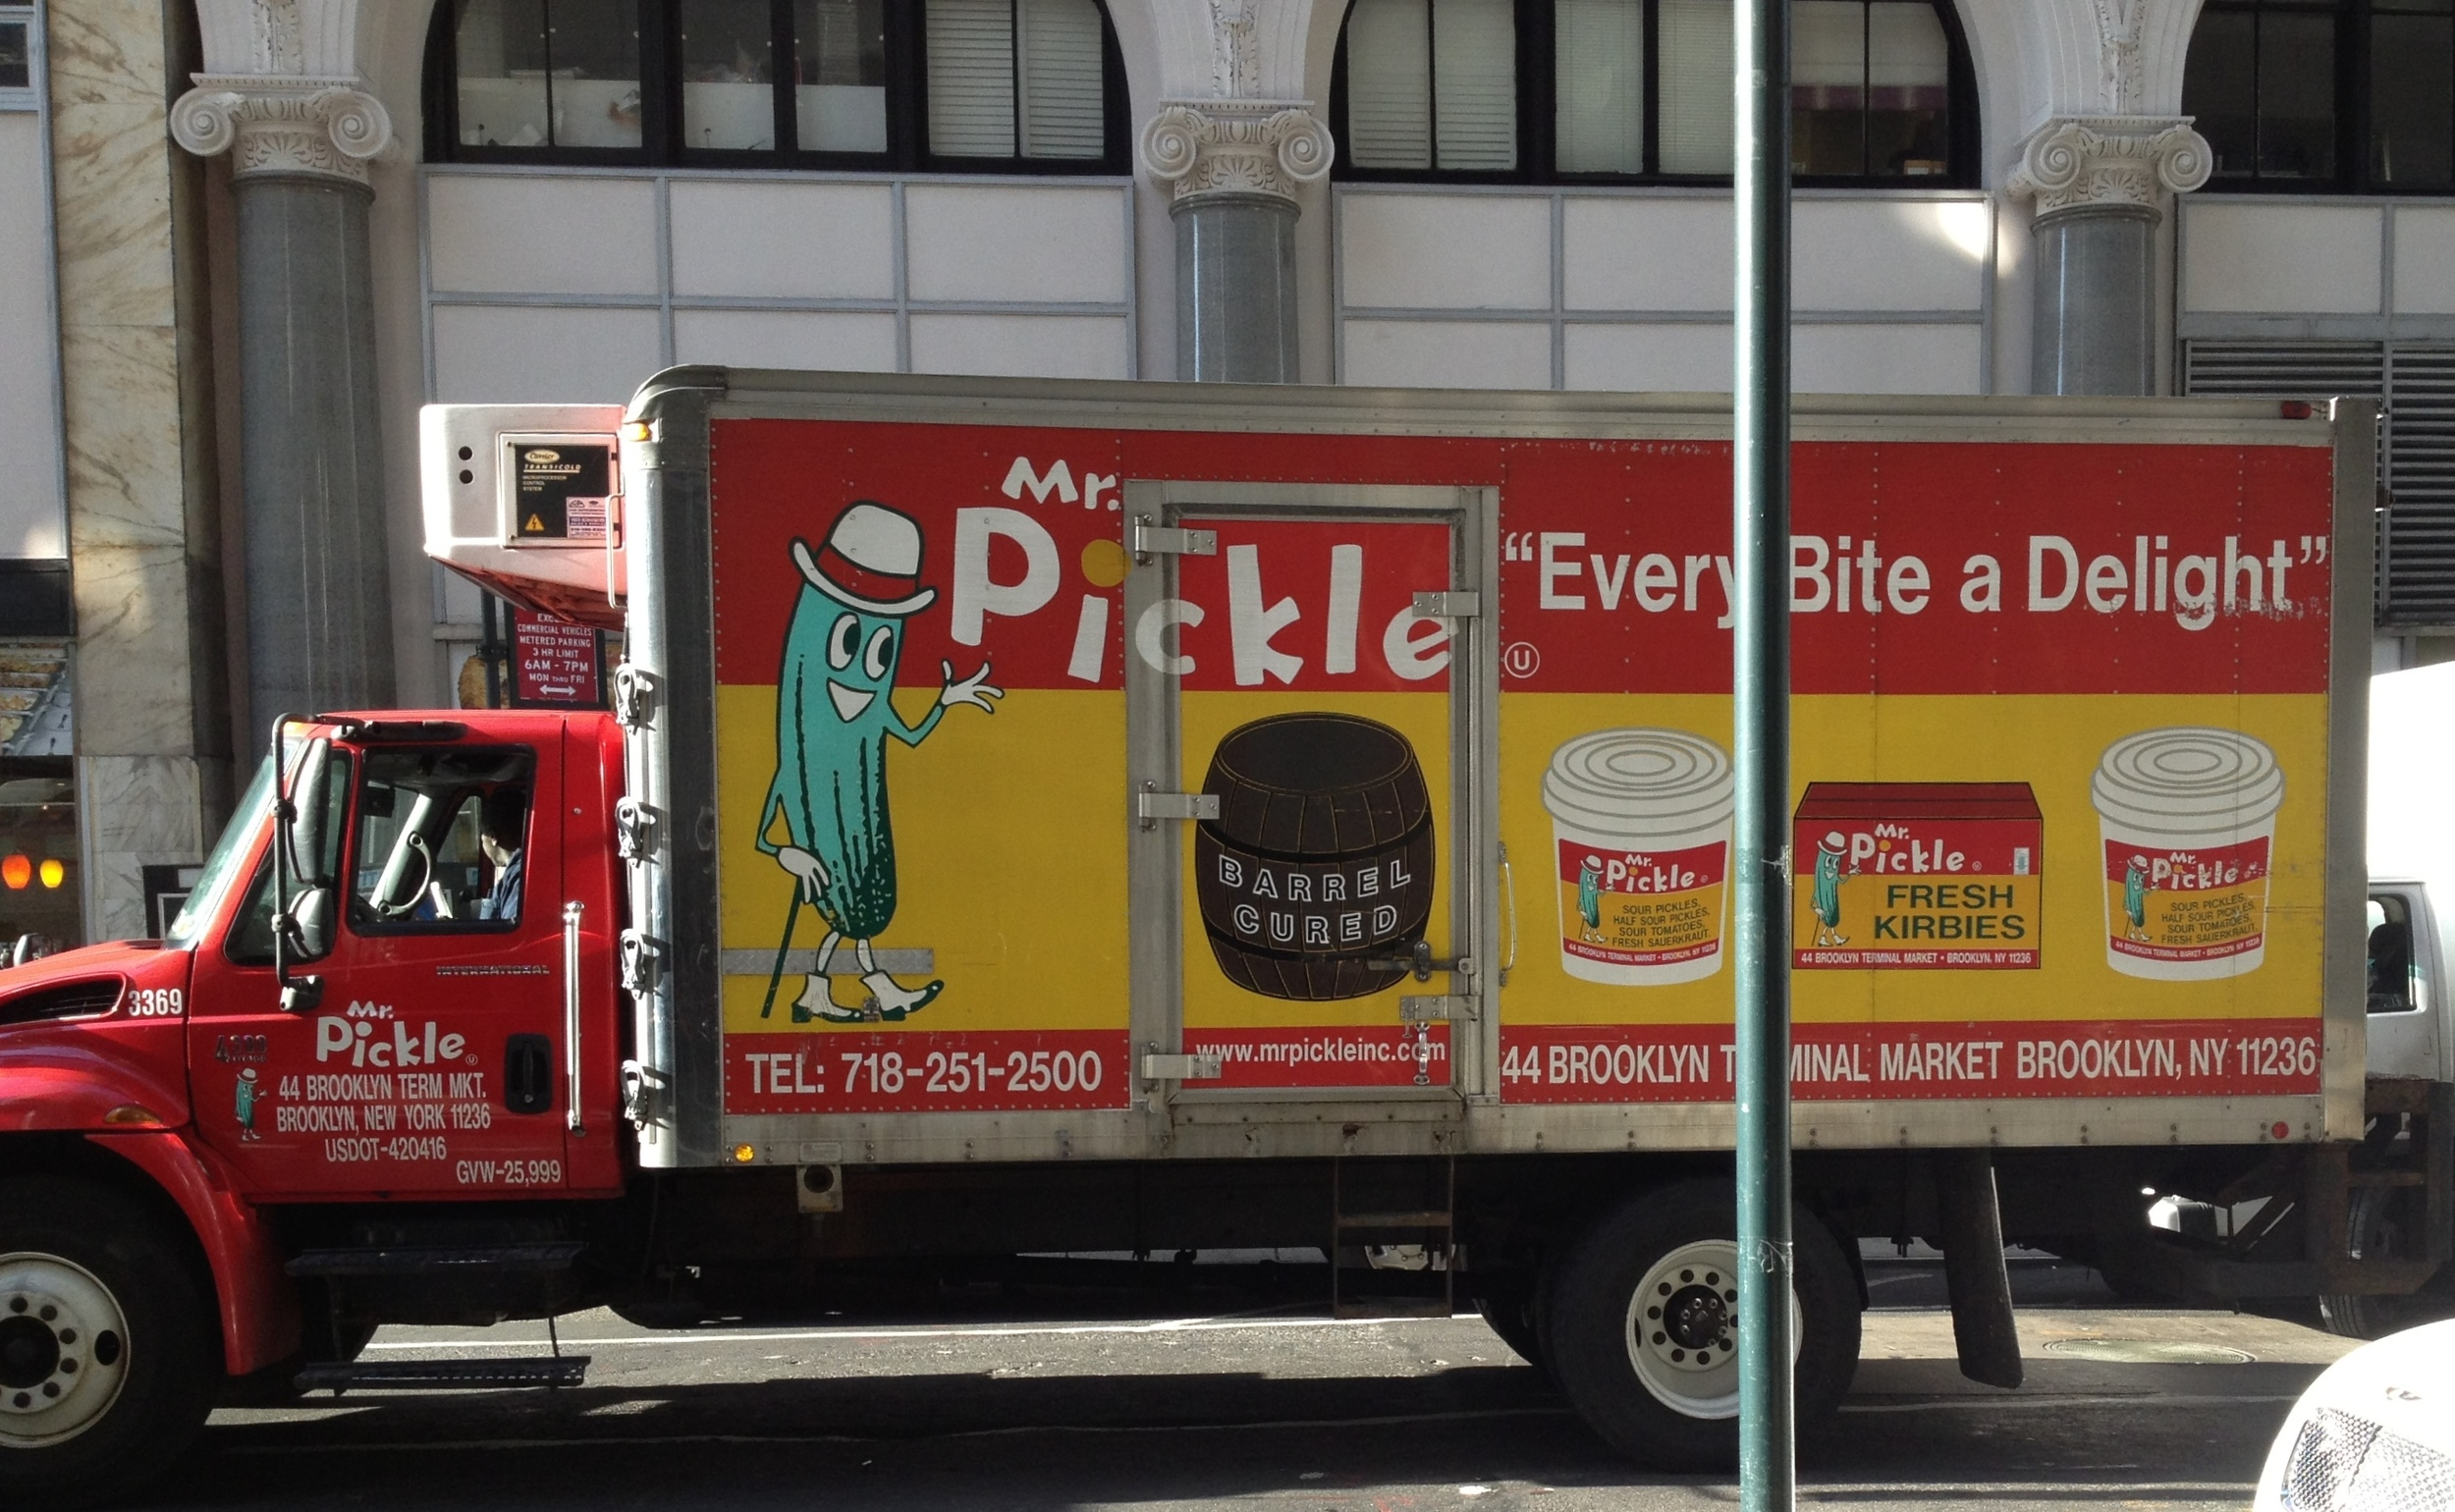 How would you need to know anything more about Mr. Pickle?